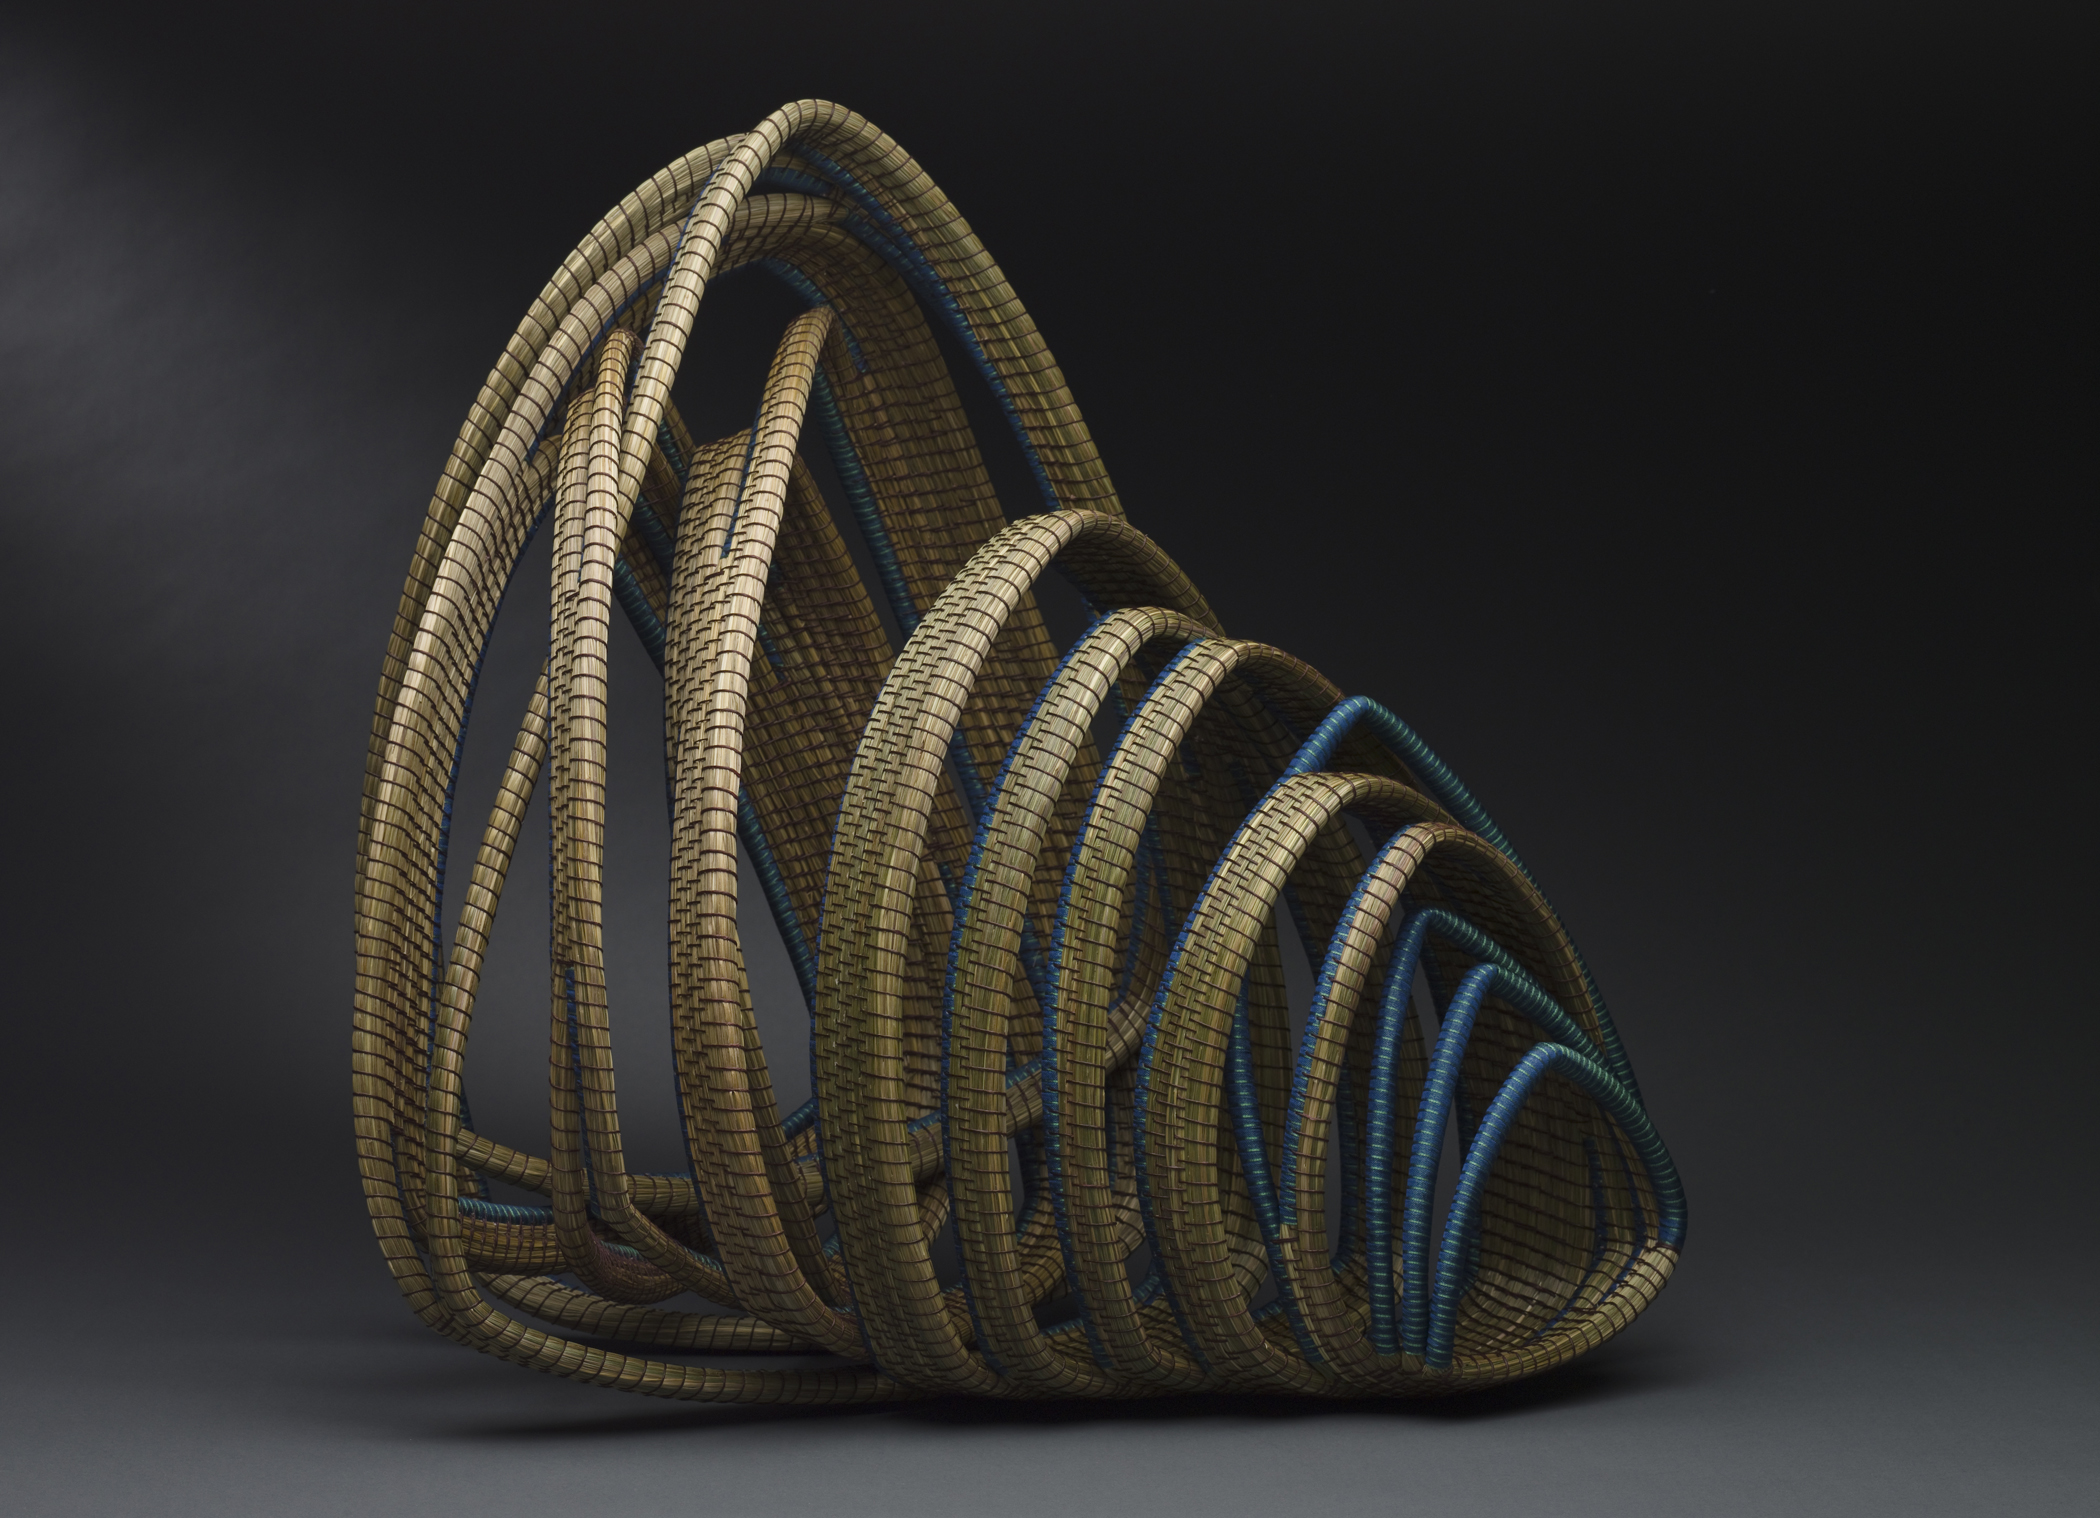 Debora Muhl Cathedral, 2008 Sweet grass, waxed linen, rayon ribbons 20 x 17 x 15 inches / 50.8 x 43.2 x 38.1 cm / DMu 1